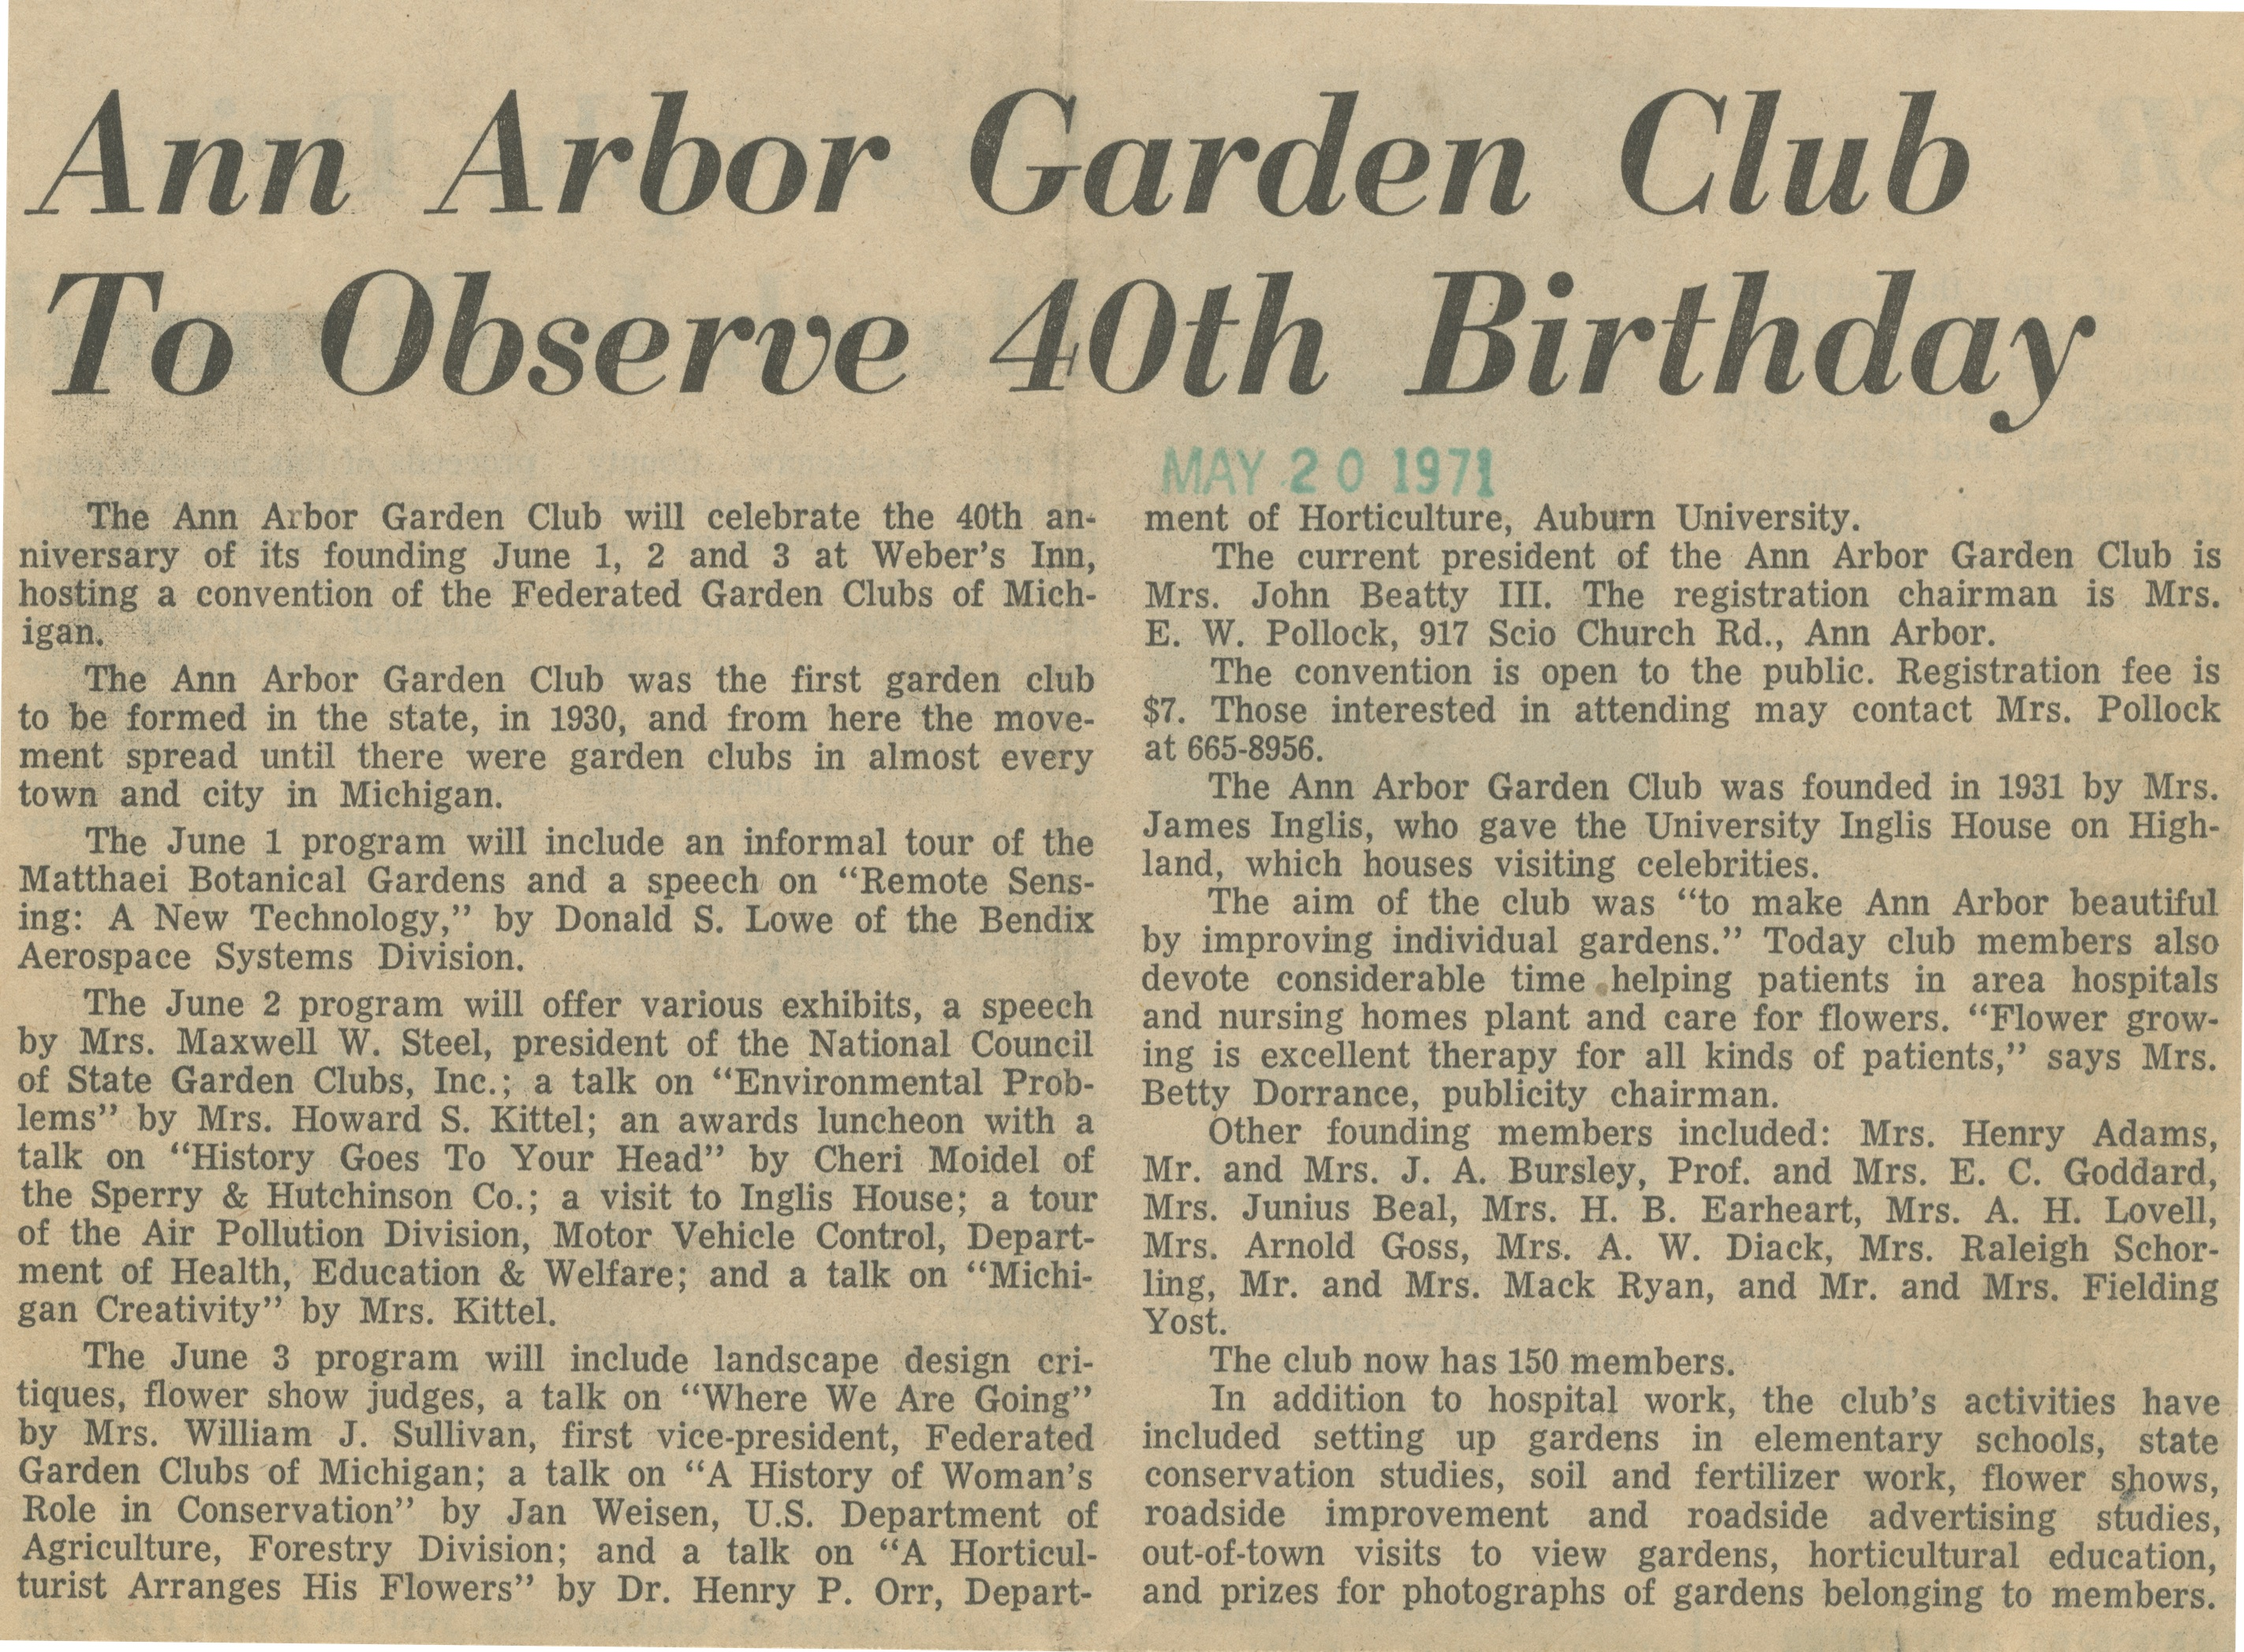 Ann Arbor Garden Club To Observe 40th Birthday image